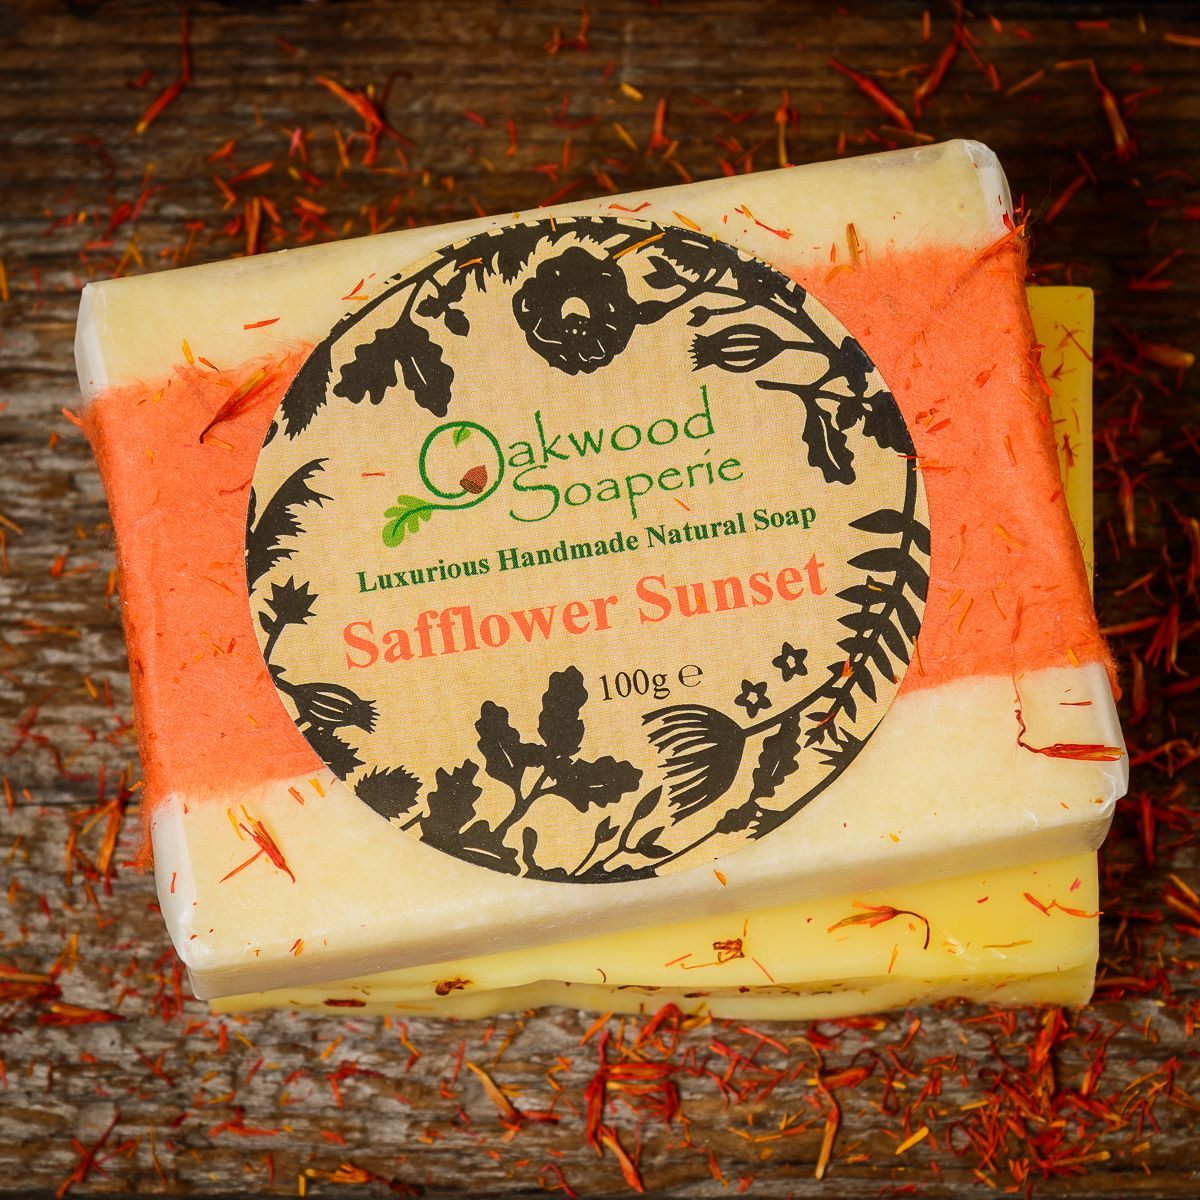 SALE - Safflower Sunset Handmade soap WAS £4.50, NOW £3.00